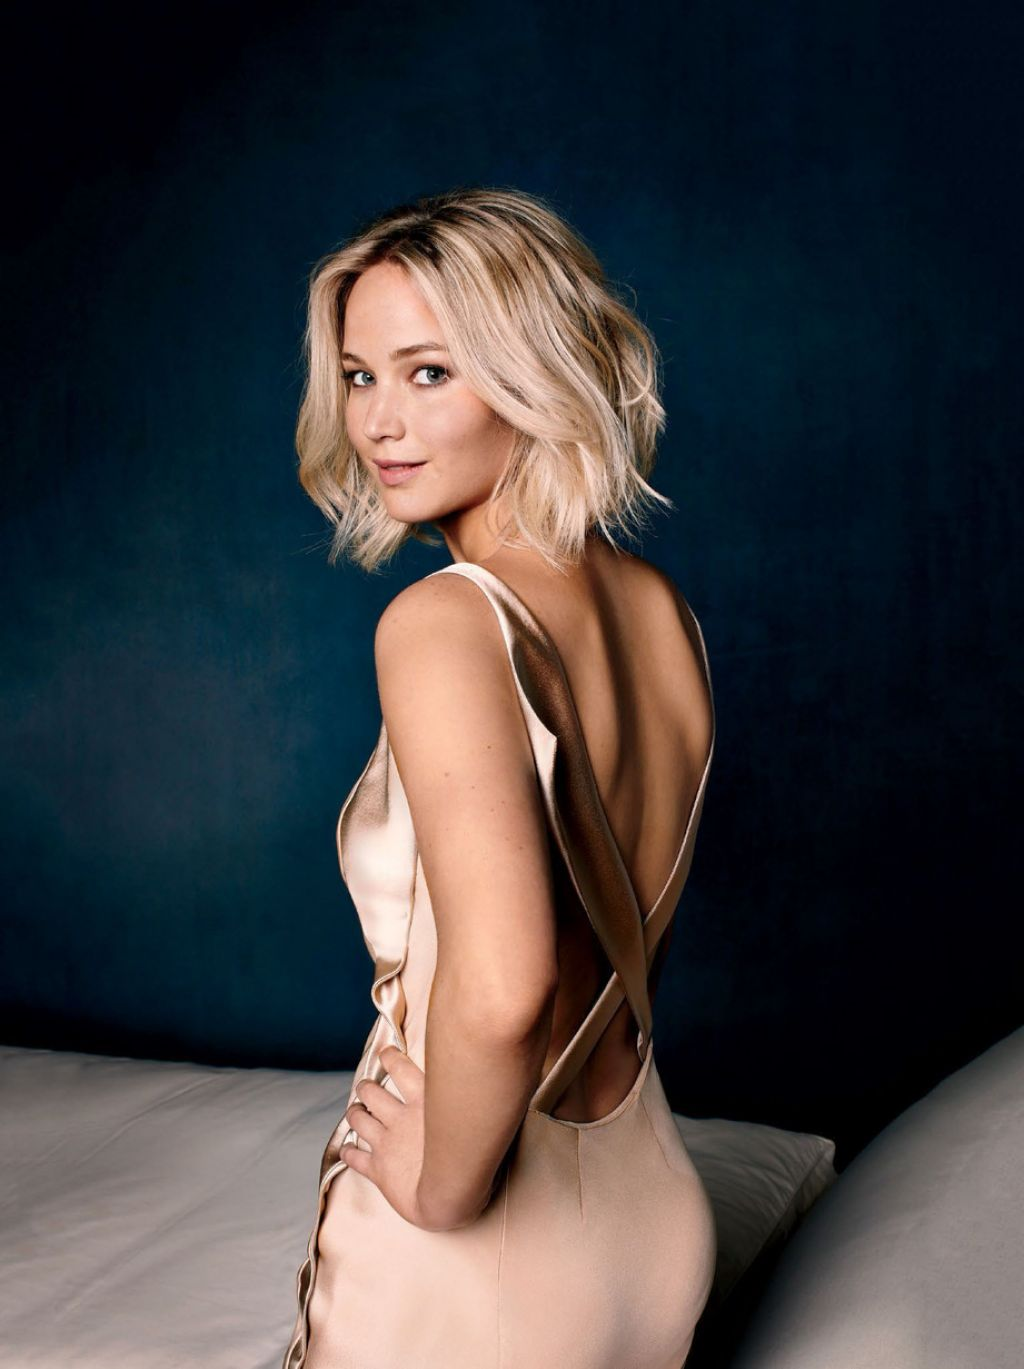 Jennifer Lawrence Photoshoot For Entertainment Weekly